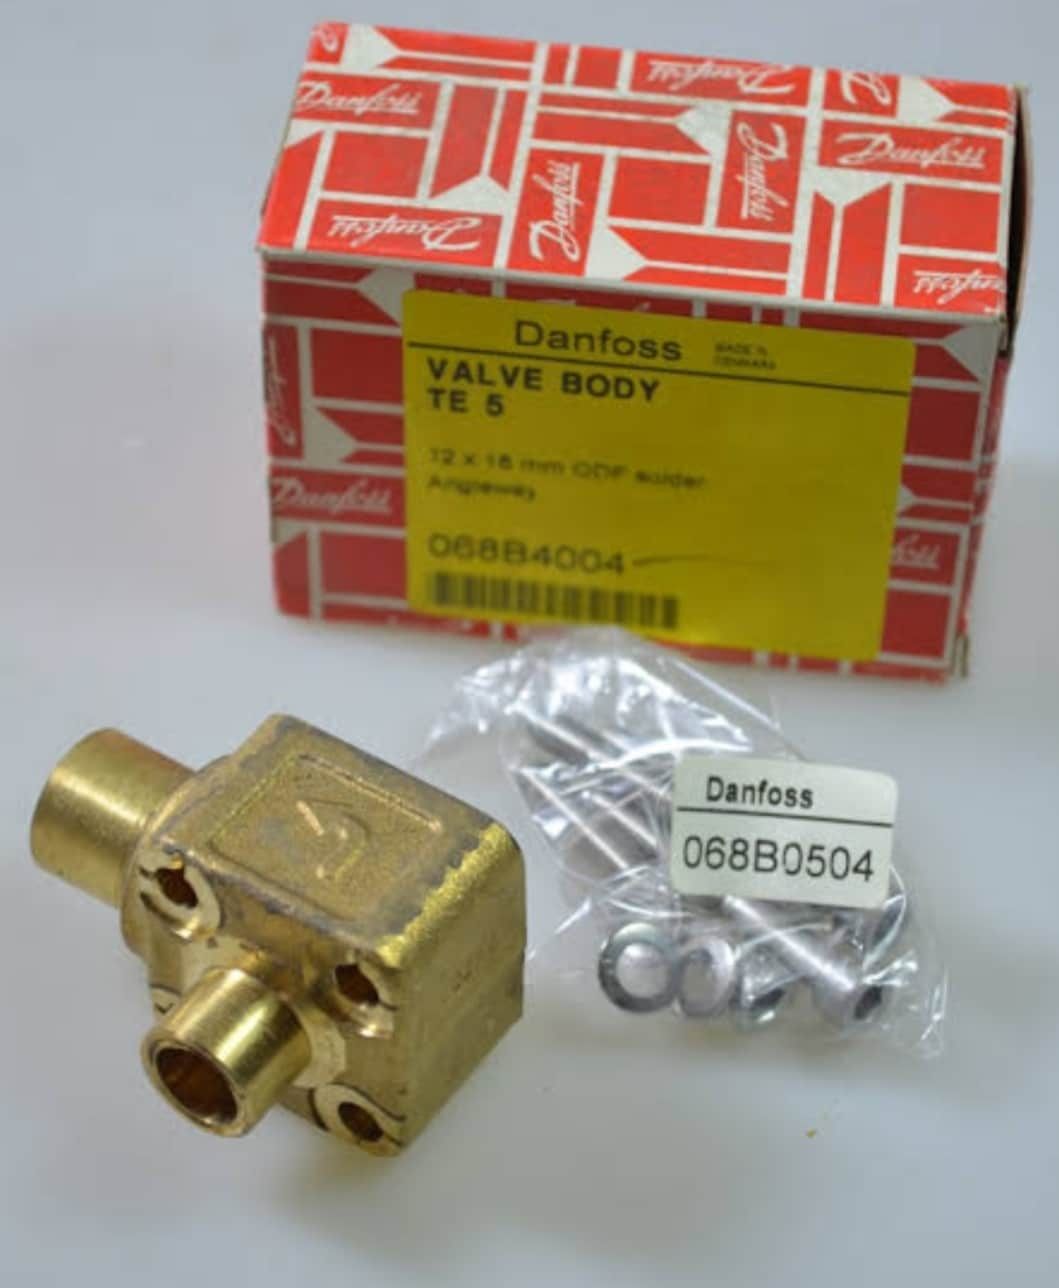 DANFOSS TE12 VALVE BODY [5/8 X 7/8 SOLDER ANGLE CONNECTION][067B4022]